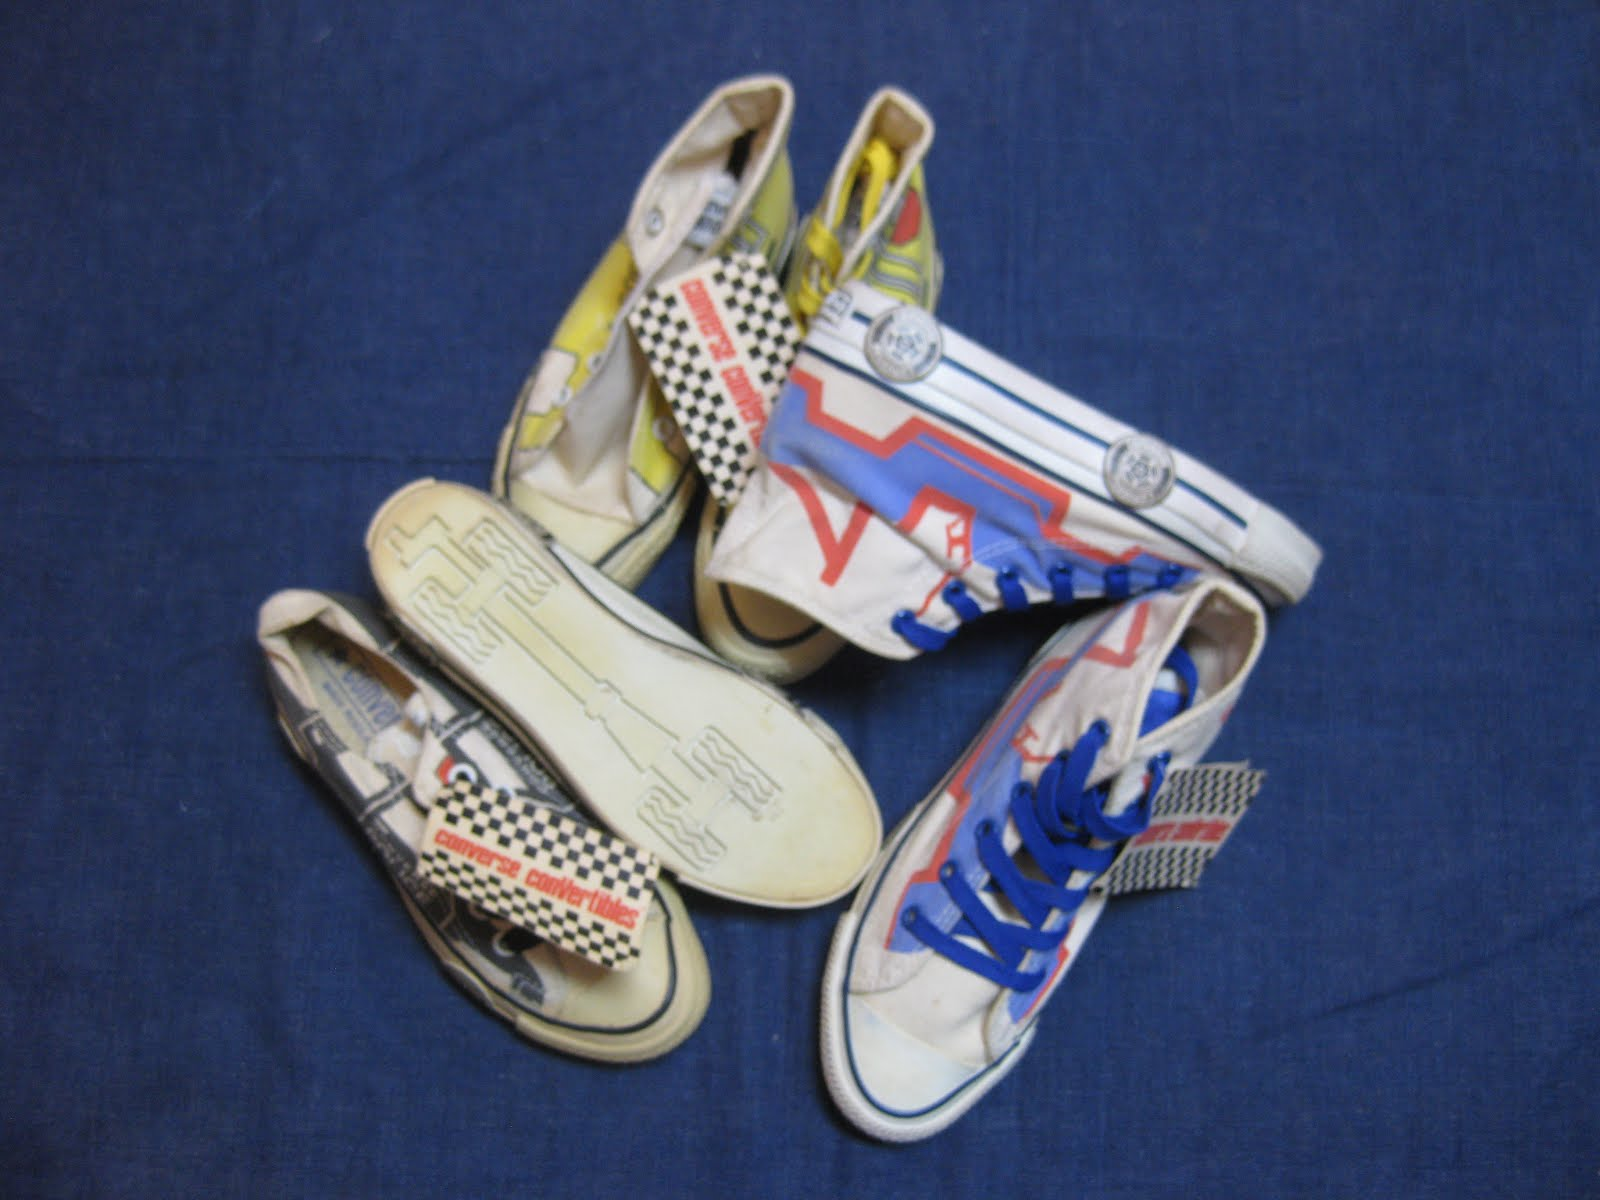 1988's DEAD STOCK                 CONVERSE               KID'S SNEAKERS